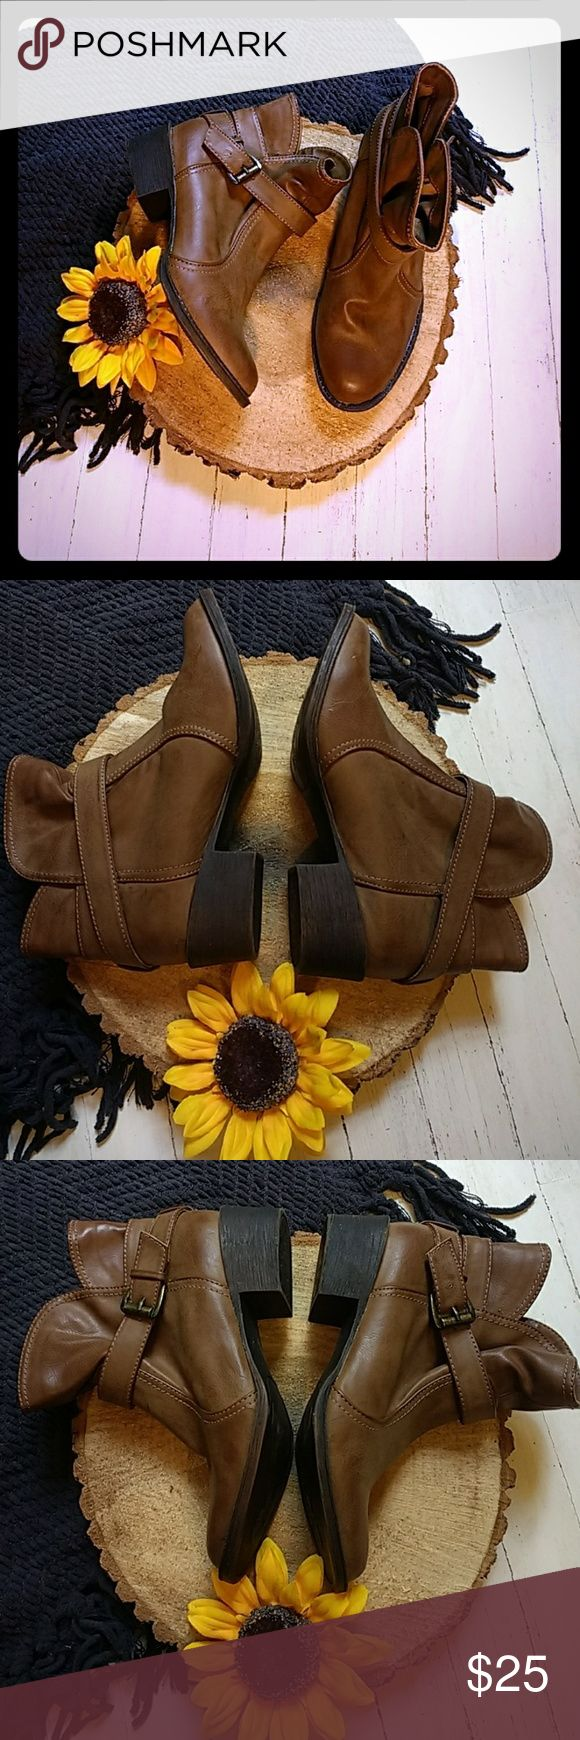 Rocket Dog brown booties Adorable but too small for me sadly. Worn inside once for a VERY short time. Has a tiny scuff at the back as pictured that I didn't notice was there when I bought them, otherwise perfect condition. Rocket Dog Shoes Ankle Boots & Booties